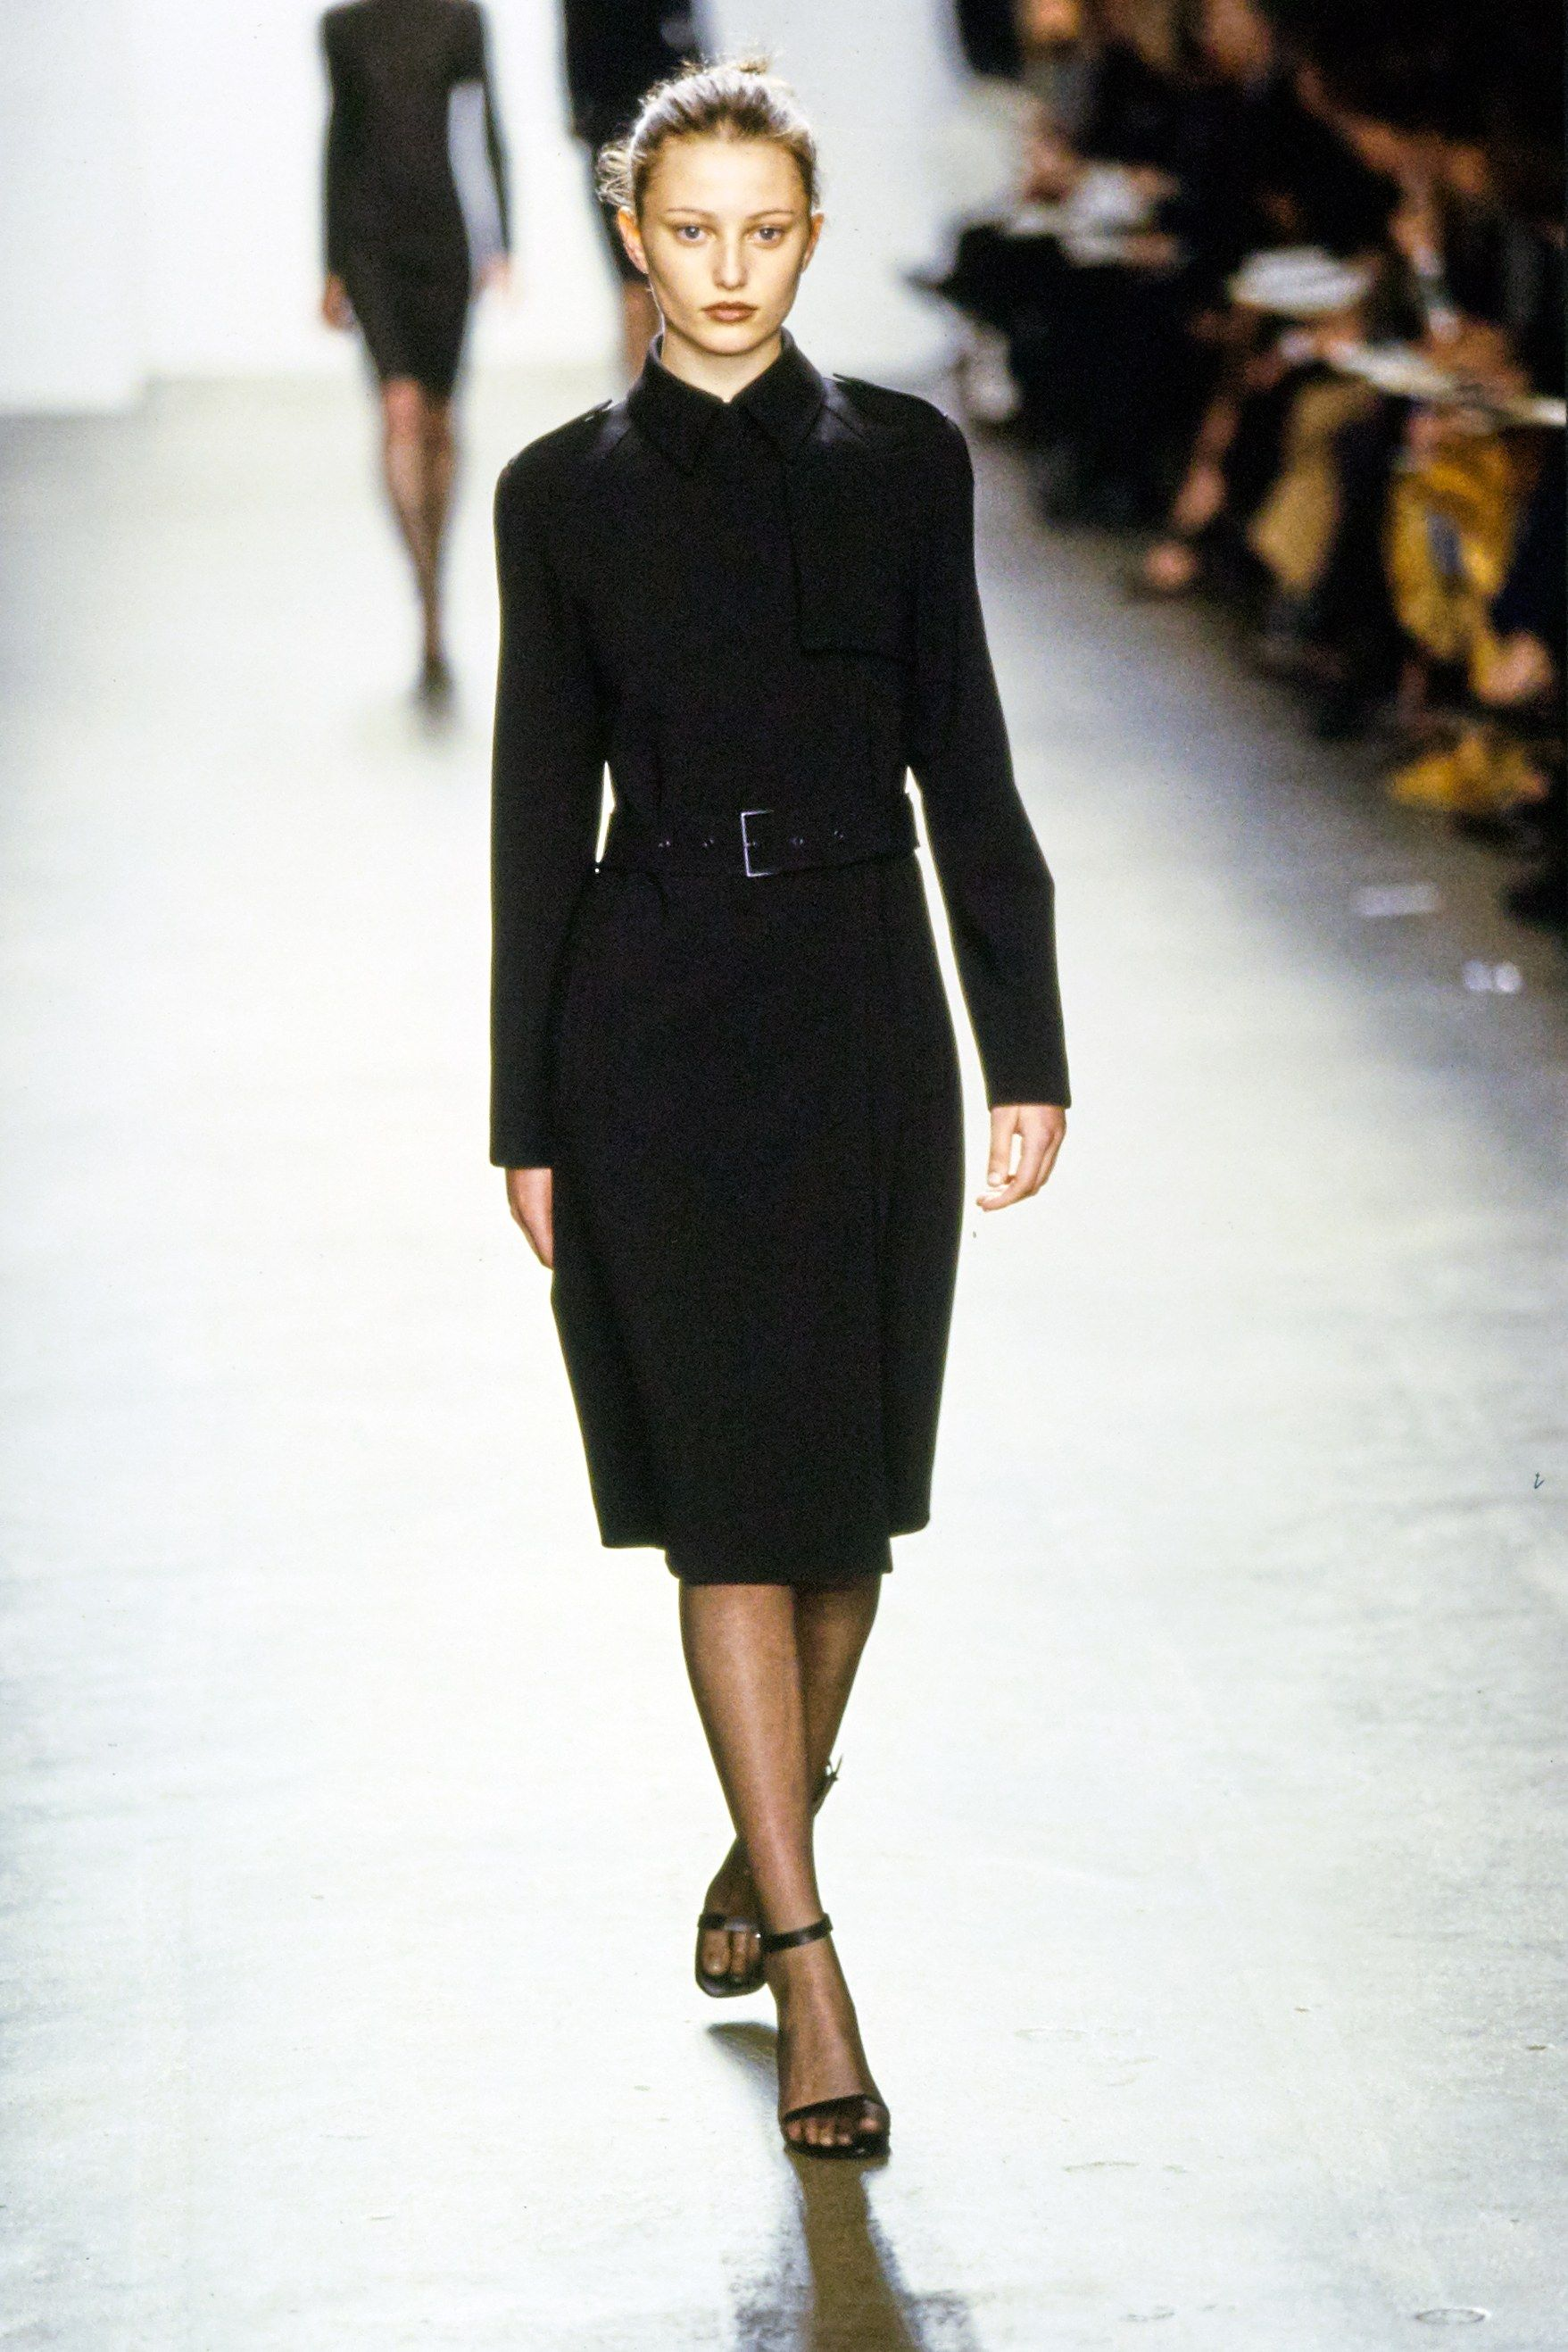 See the complete Calvin Klein Fall 1999 collection and 9 more Calvin Klein shows from the '90s.